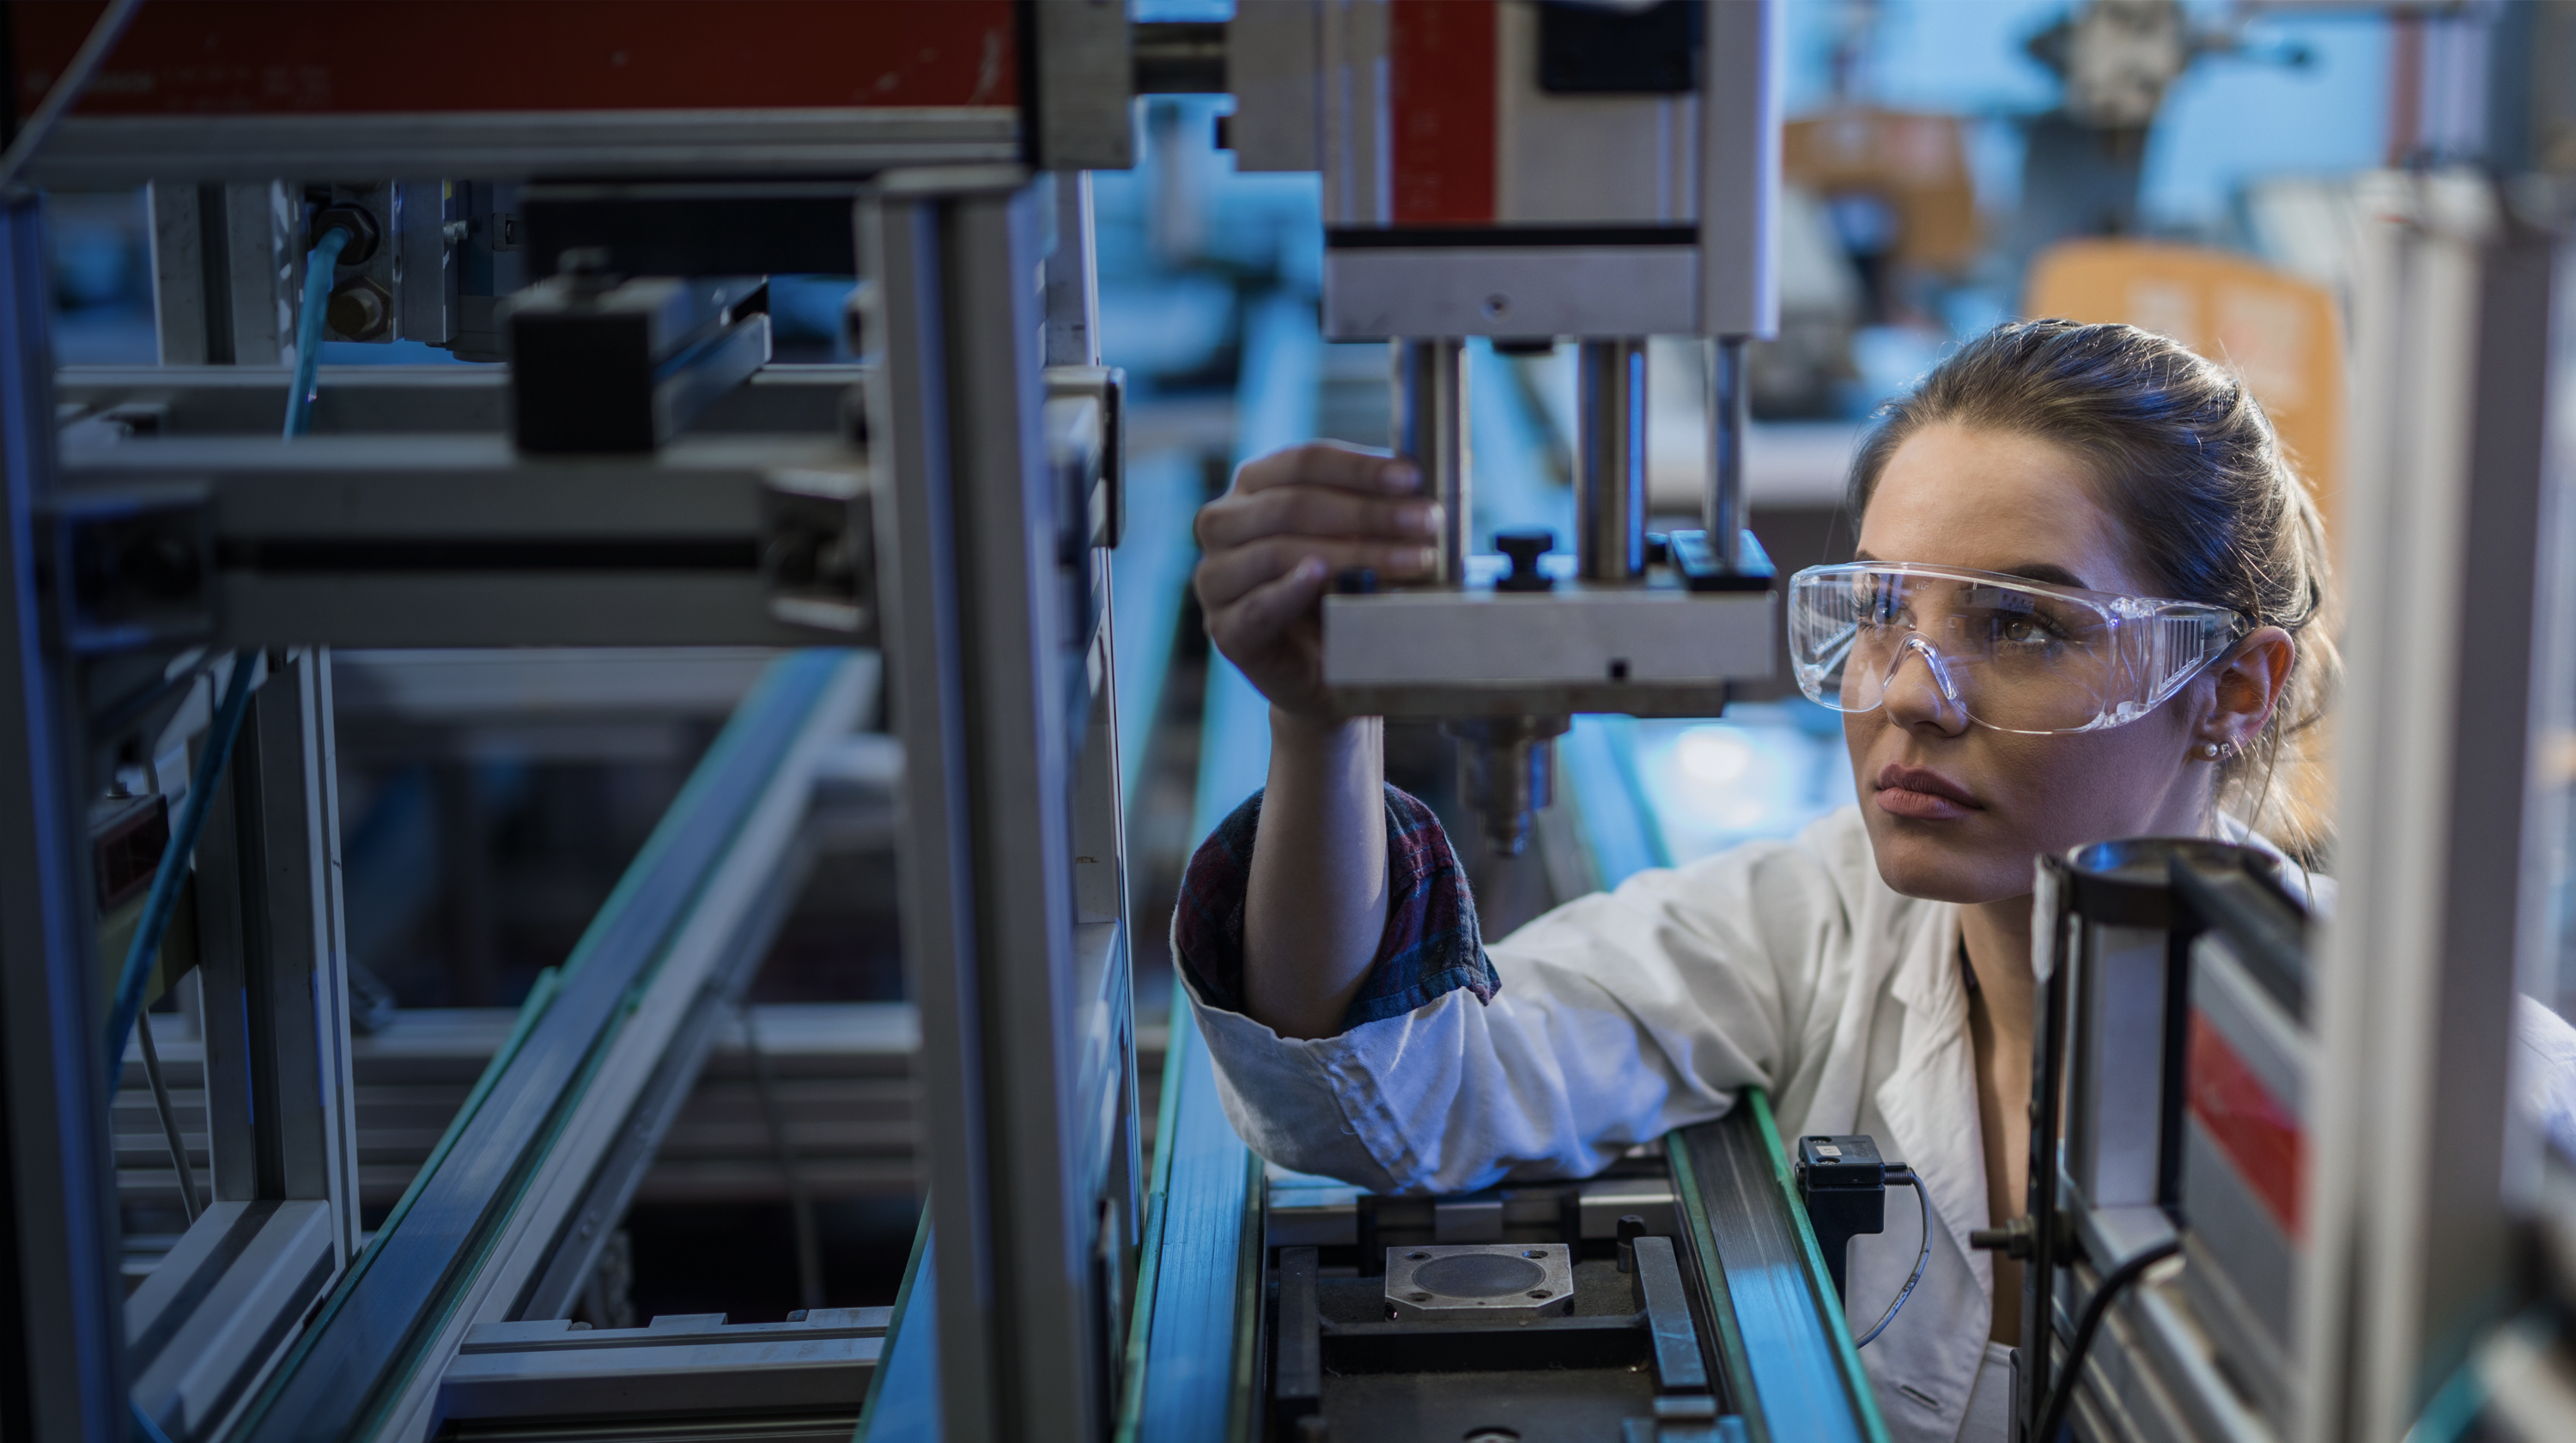 Female engineer examining machine part on a production line